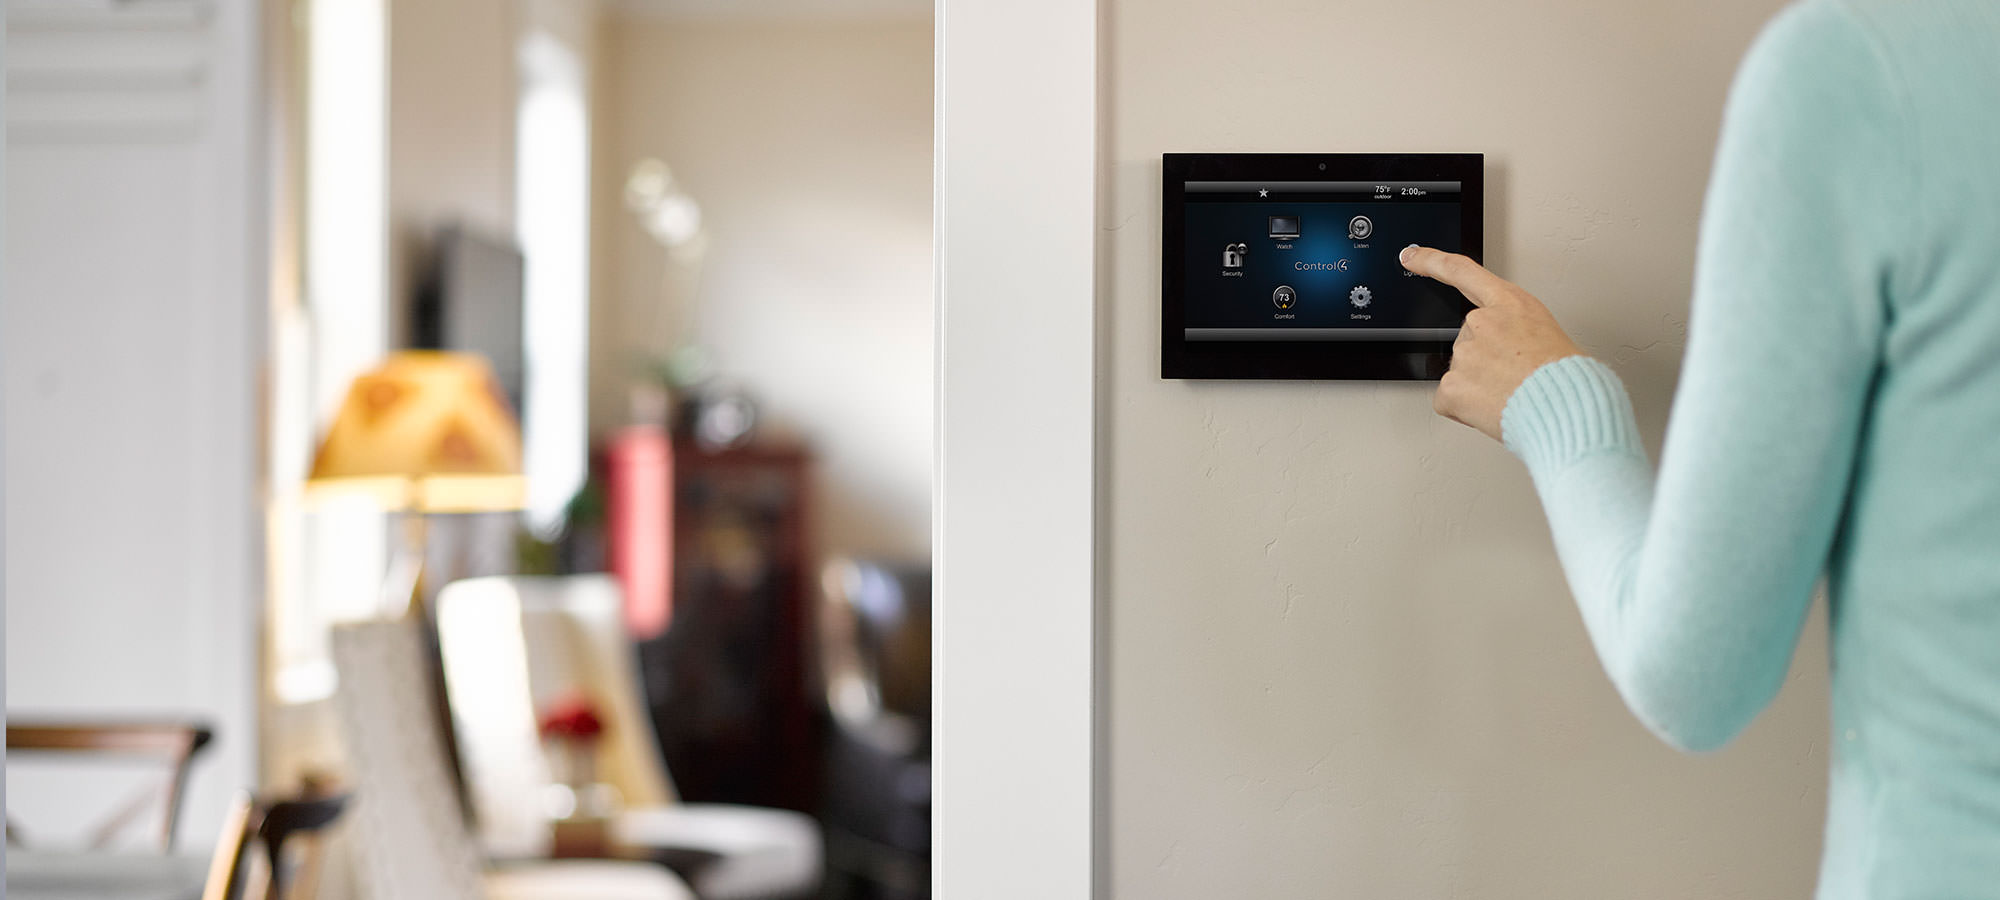 5 Reasons Why You Should Be Using a Home Automation System